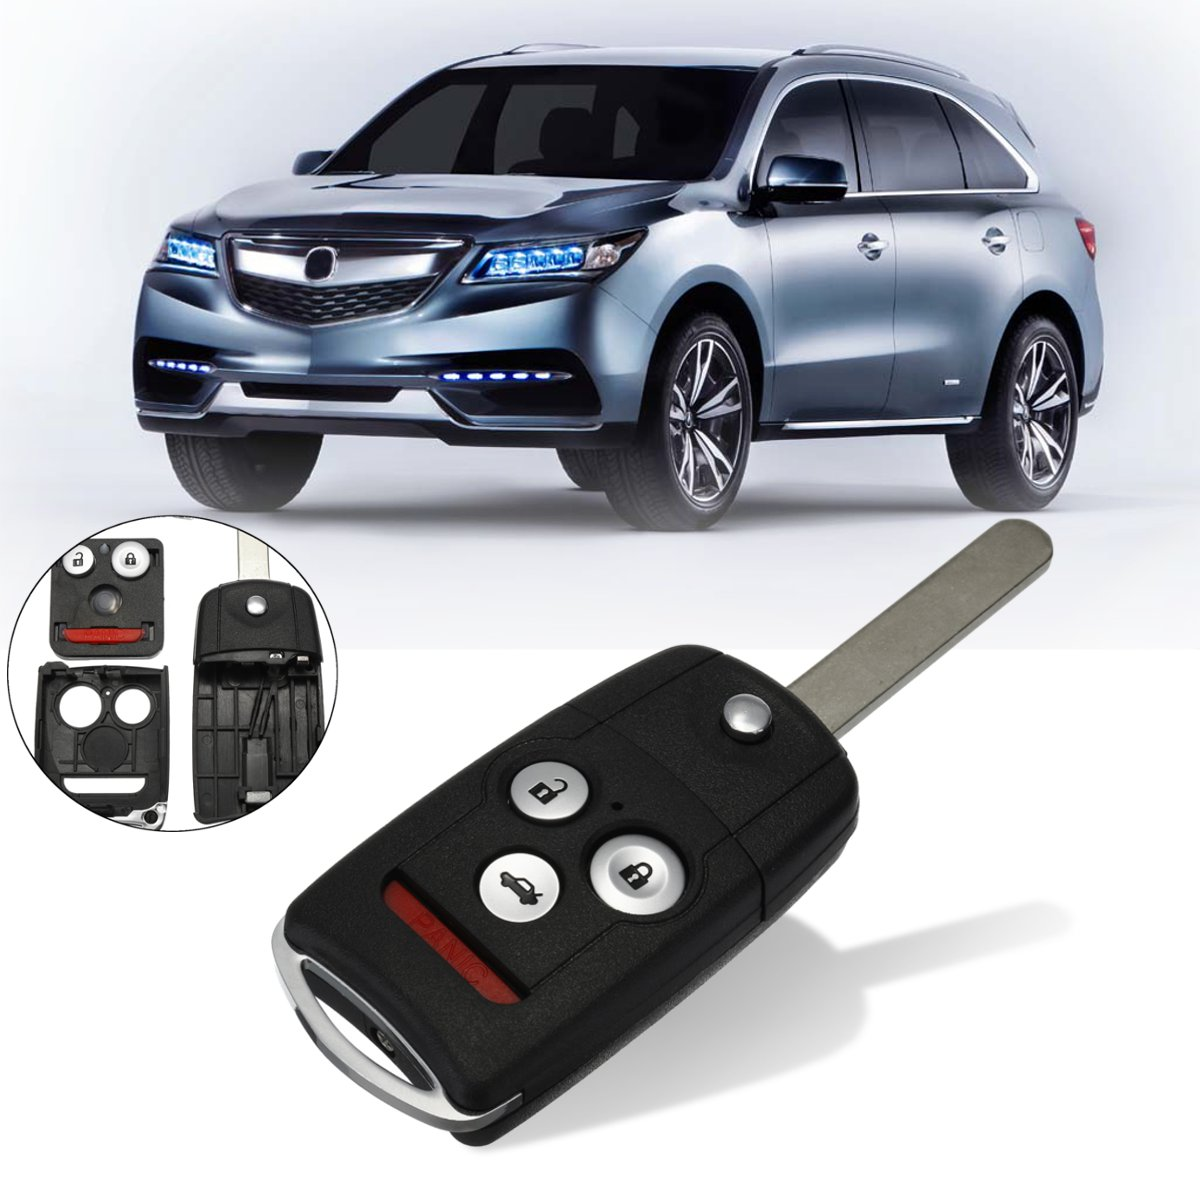 New Uncut Entry Keyless Remote Flip Key Fob Case Shell For Acura TL TSX Accord #KK-2620 N5F0602A1A